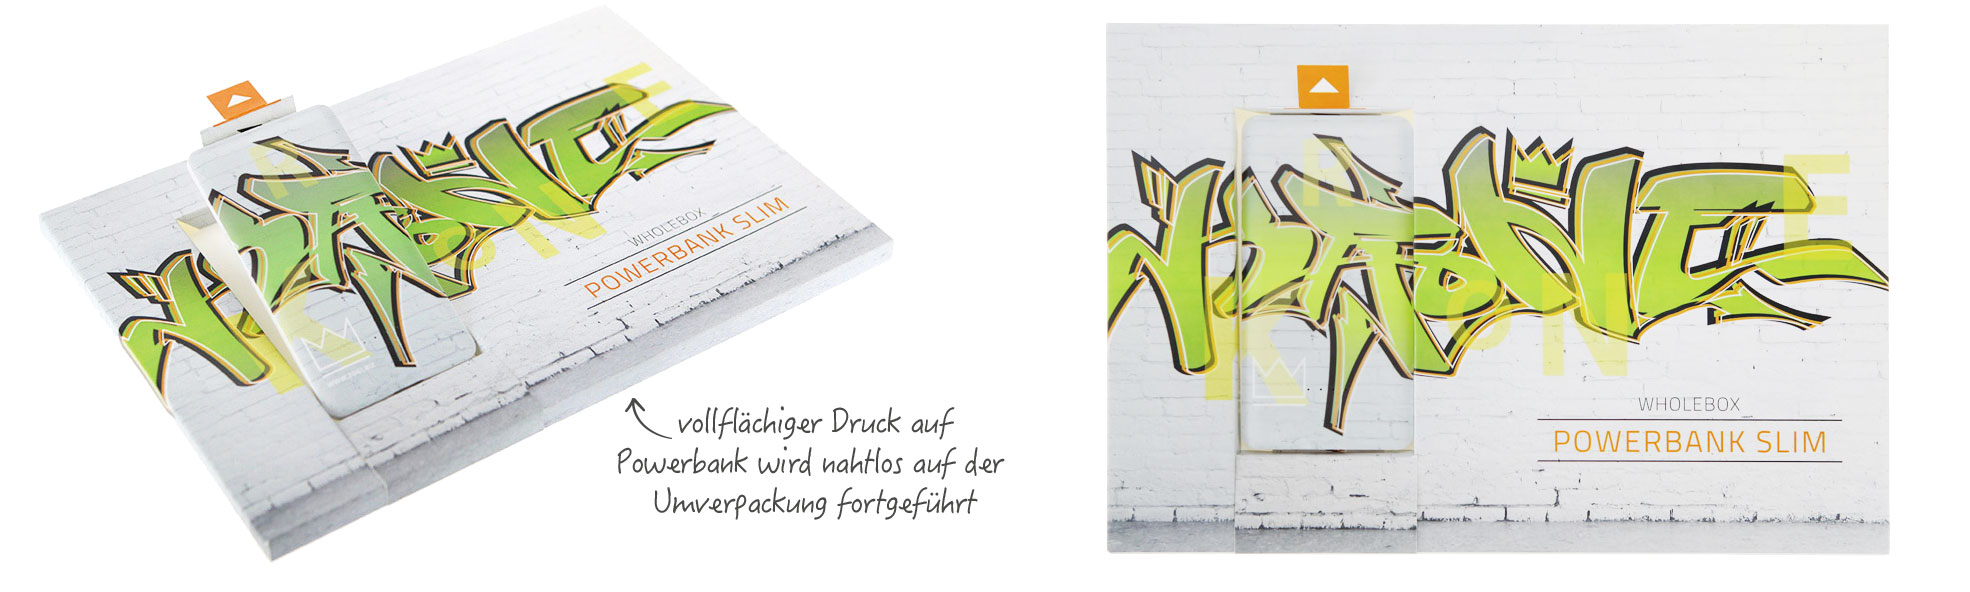 Wholeboxes-powerbank-slim-werbeartikel